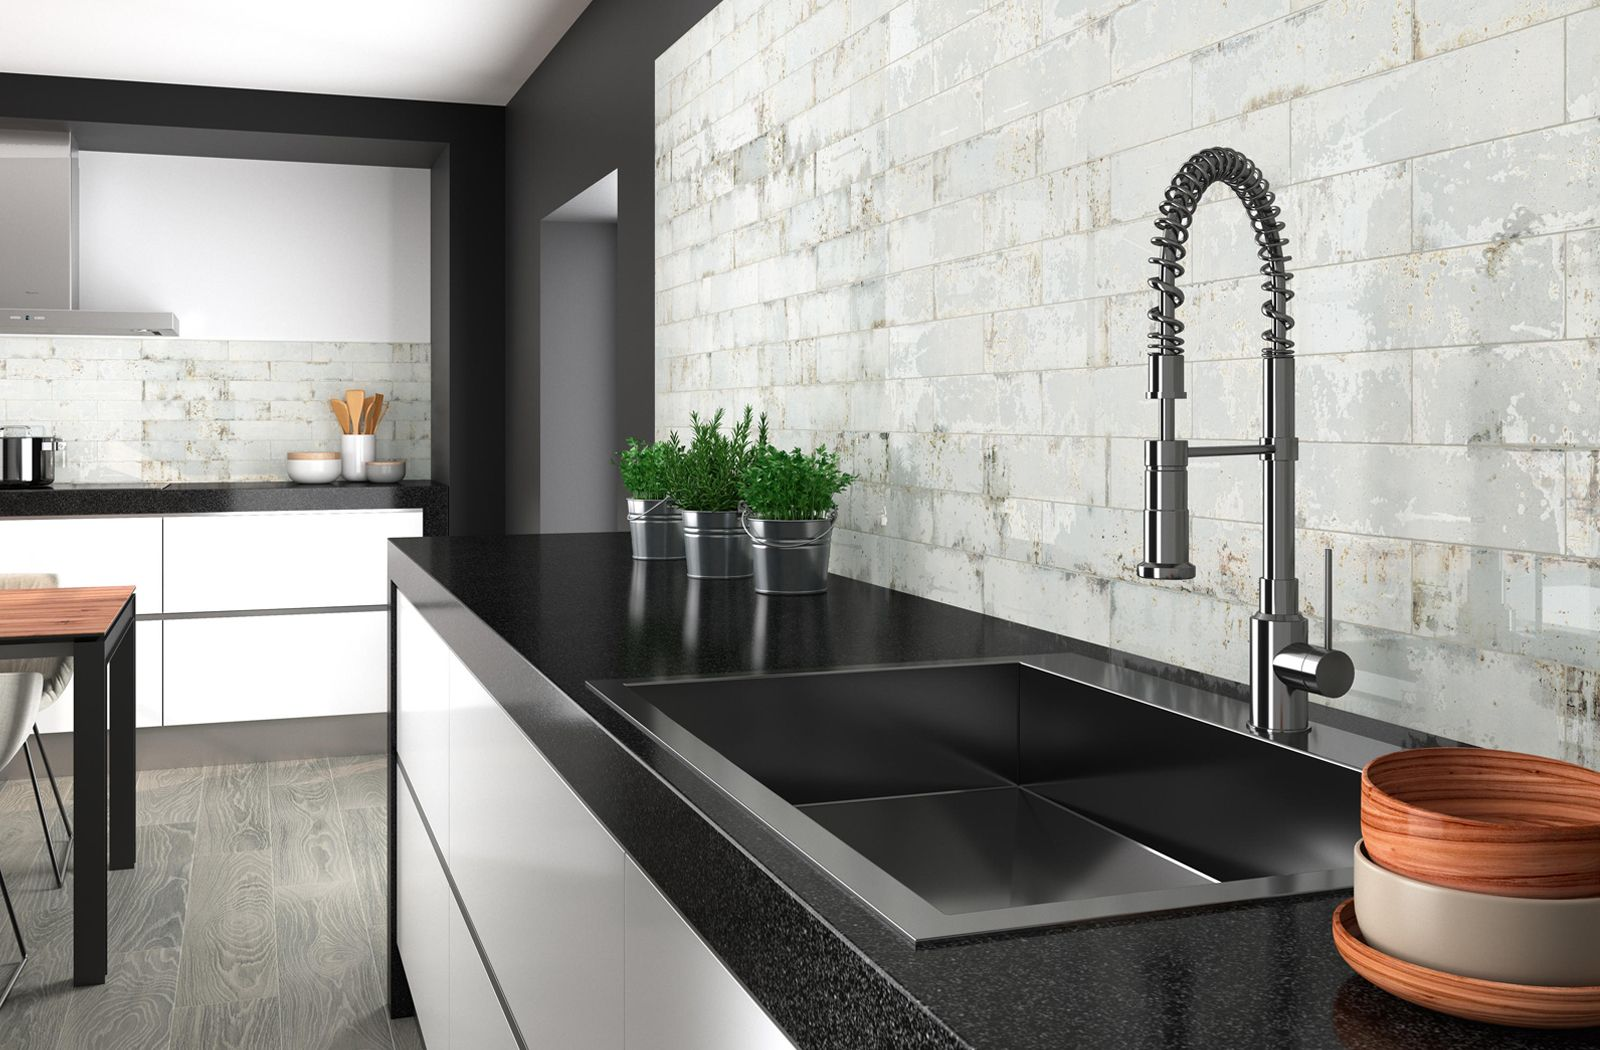 Modern industrial kitchen with Grunge wall tiles